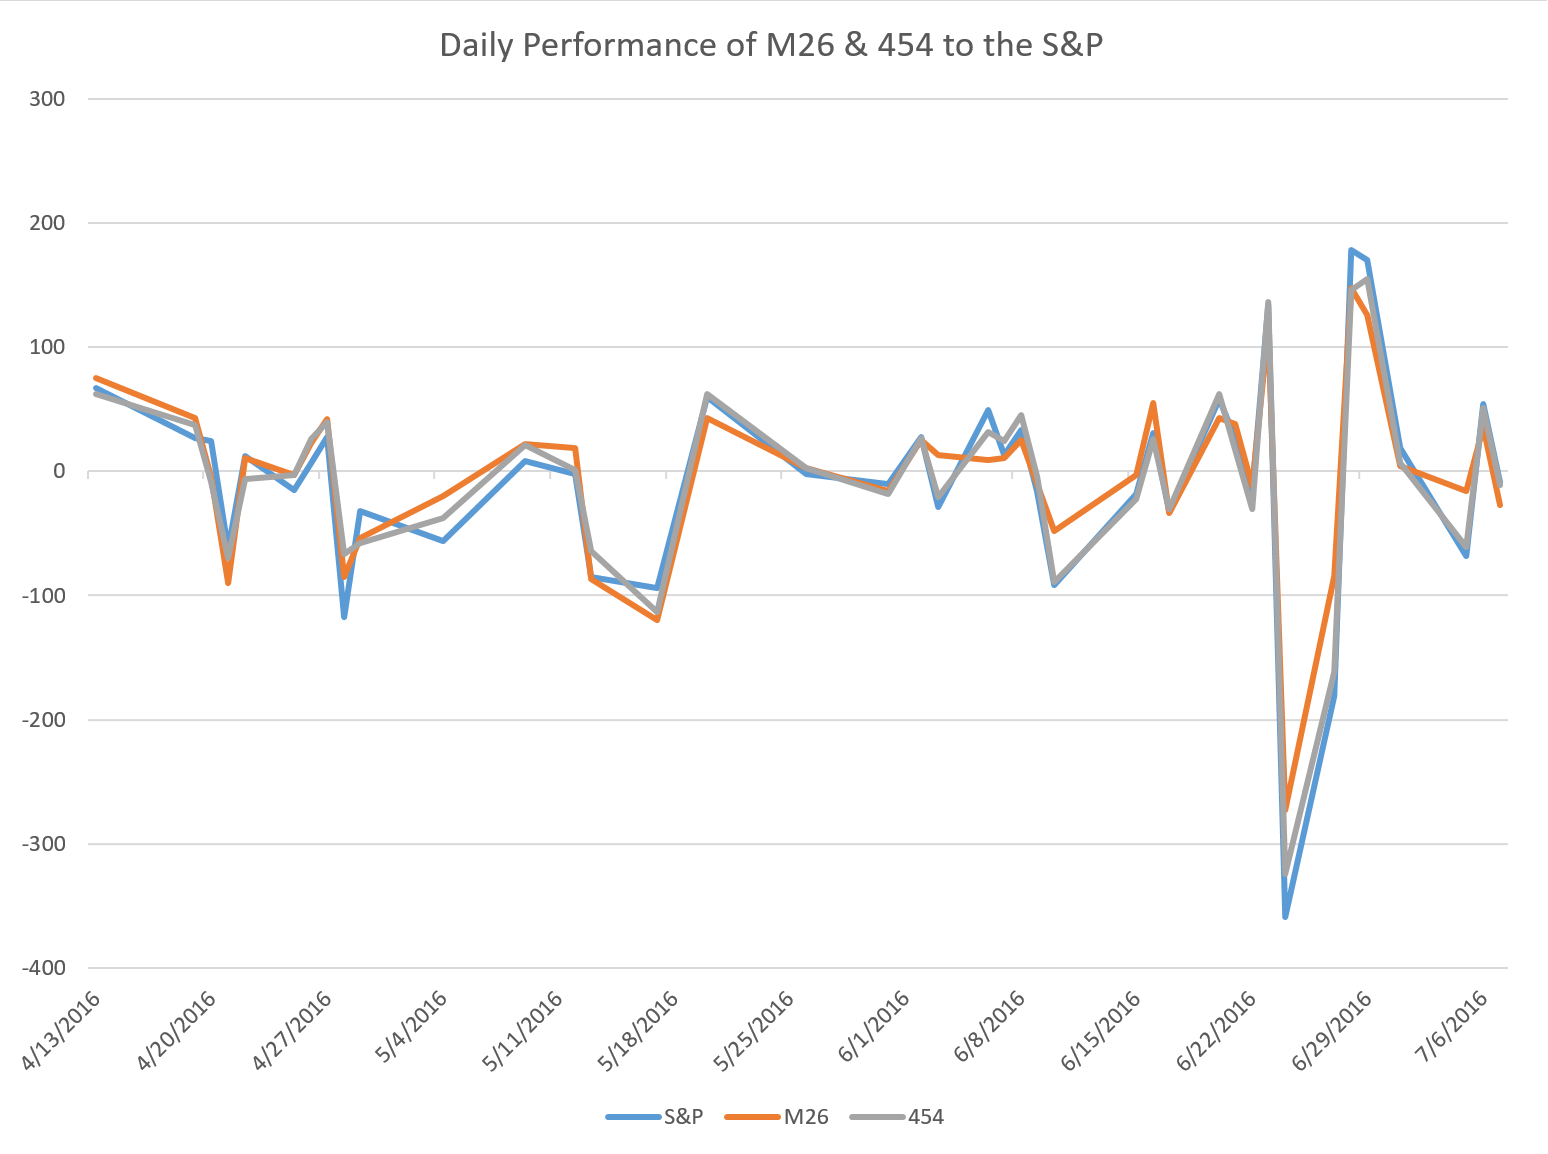 Daily % change in M26, 454, and the S&P